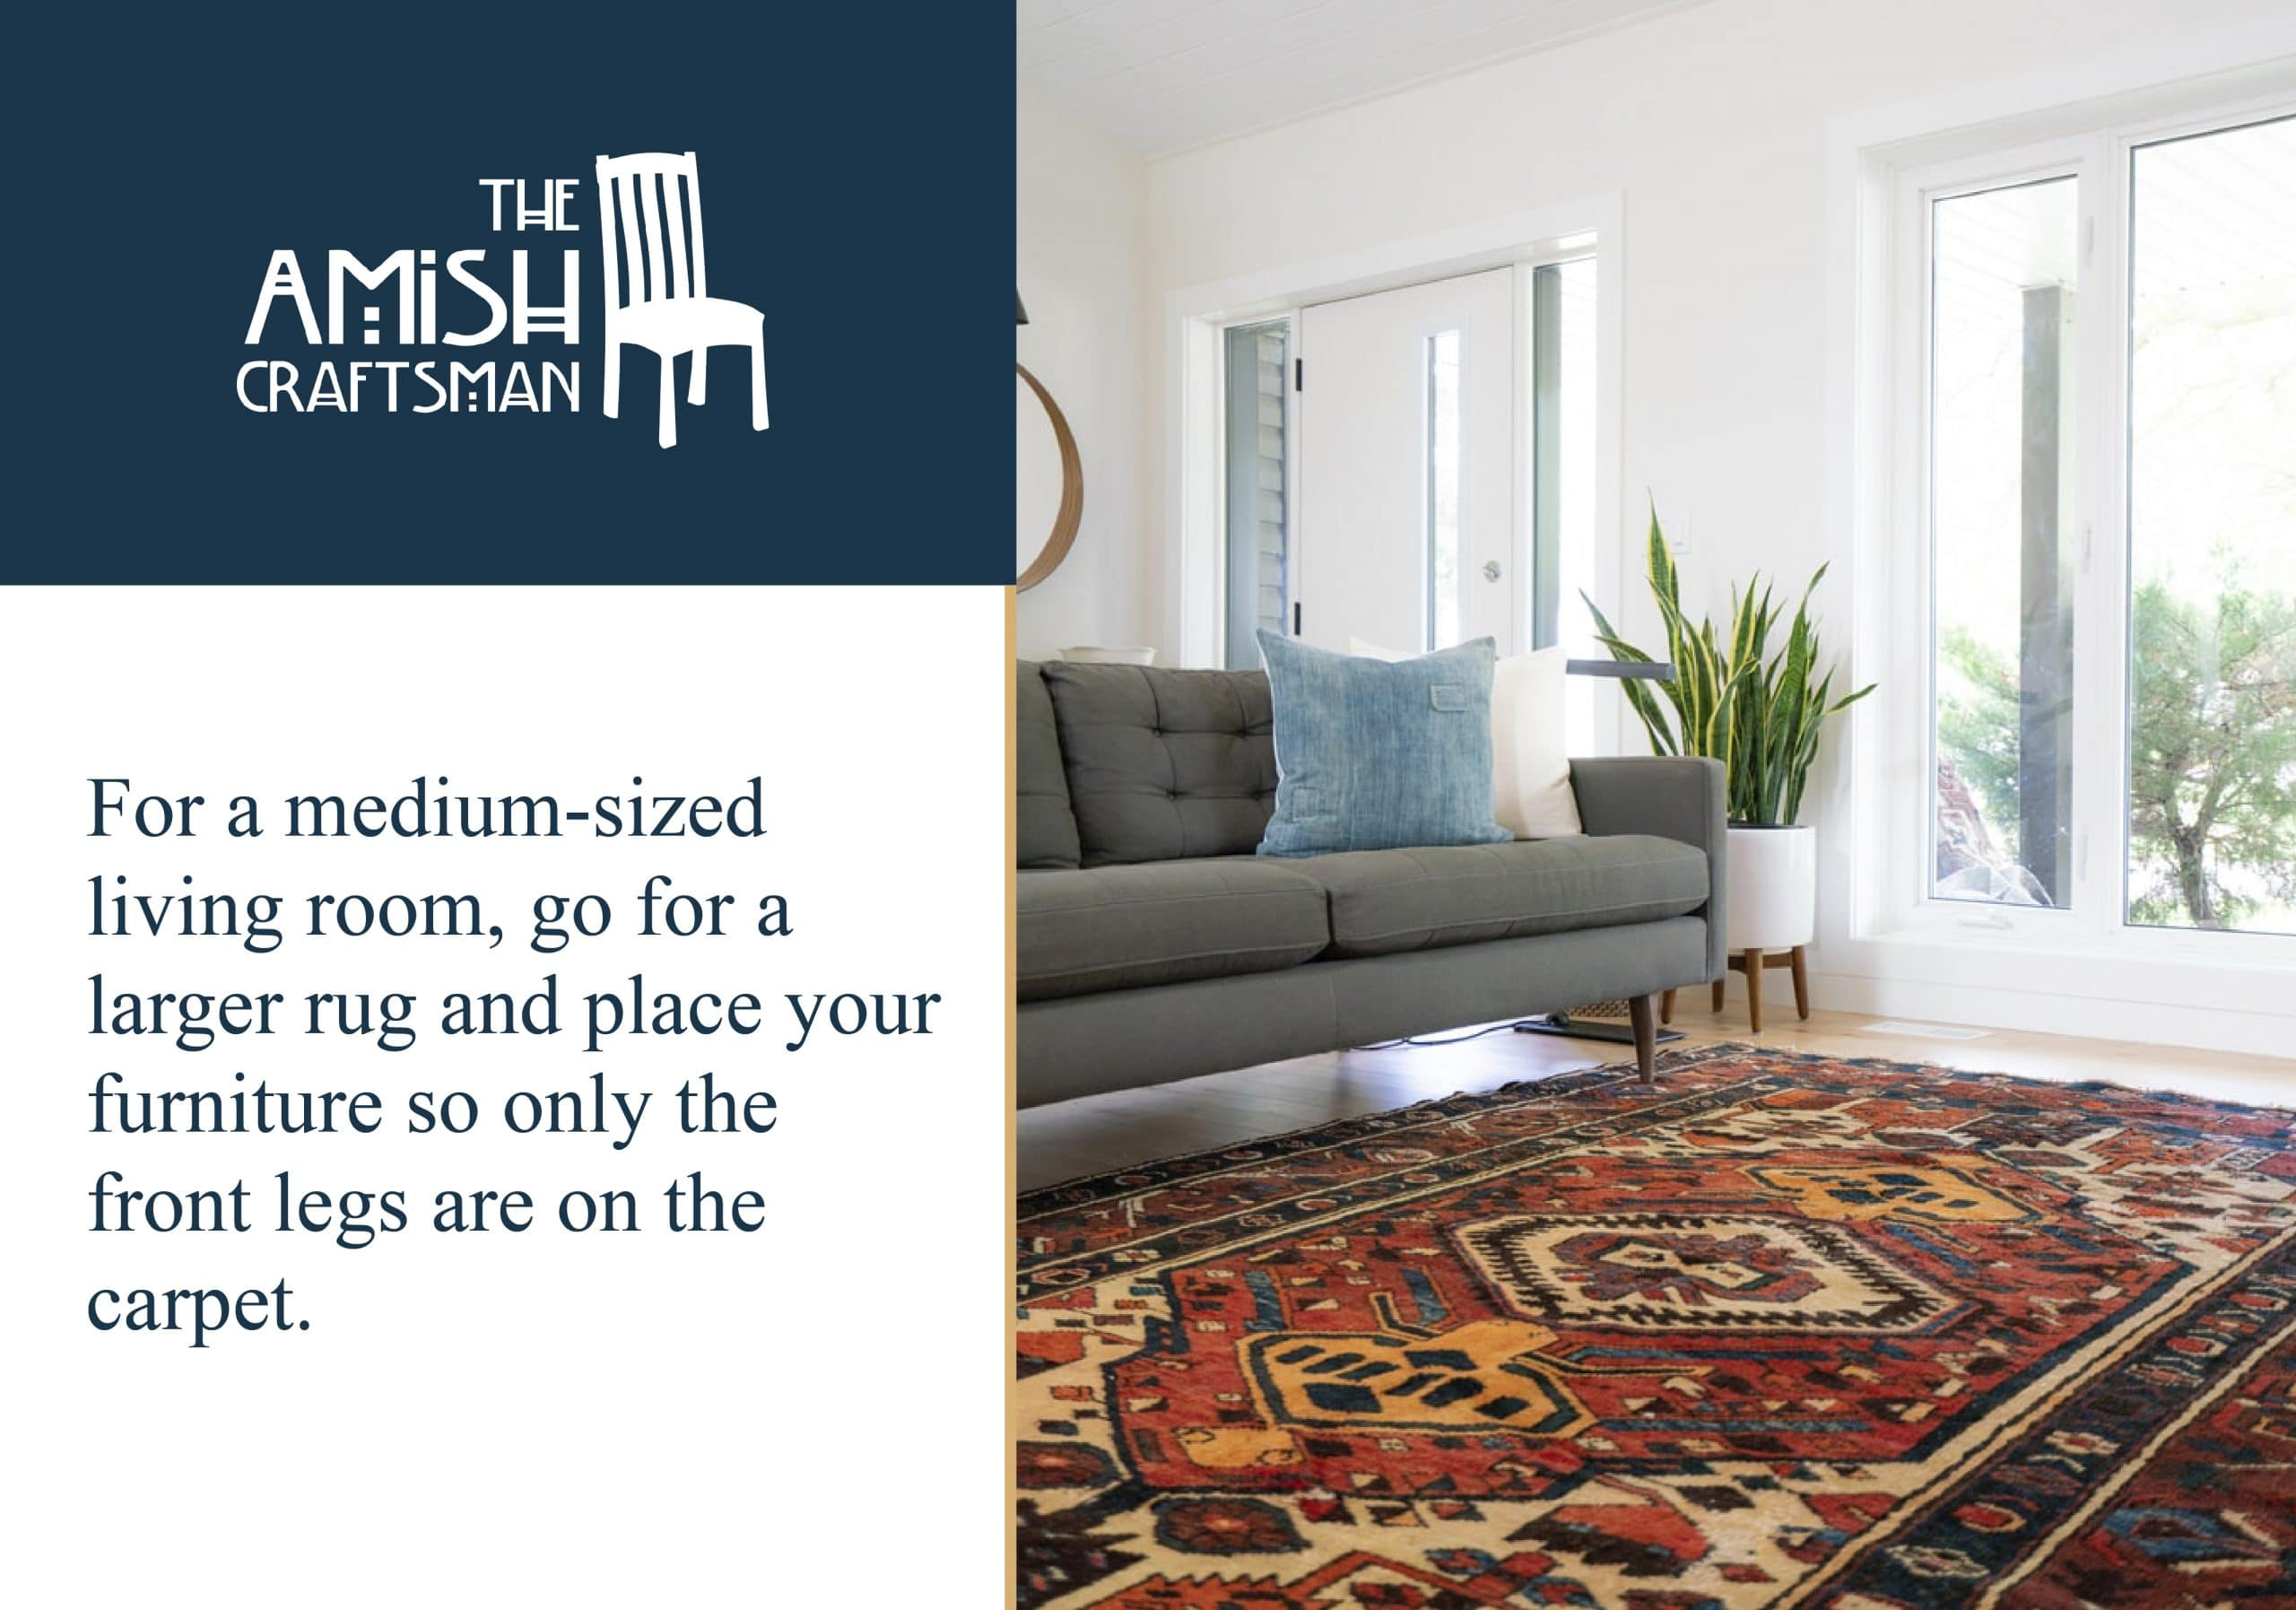 Use a large rug in a medium sized living room